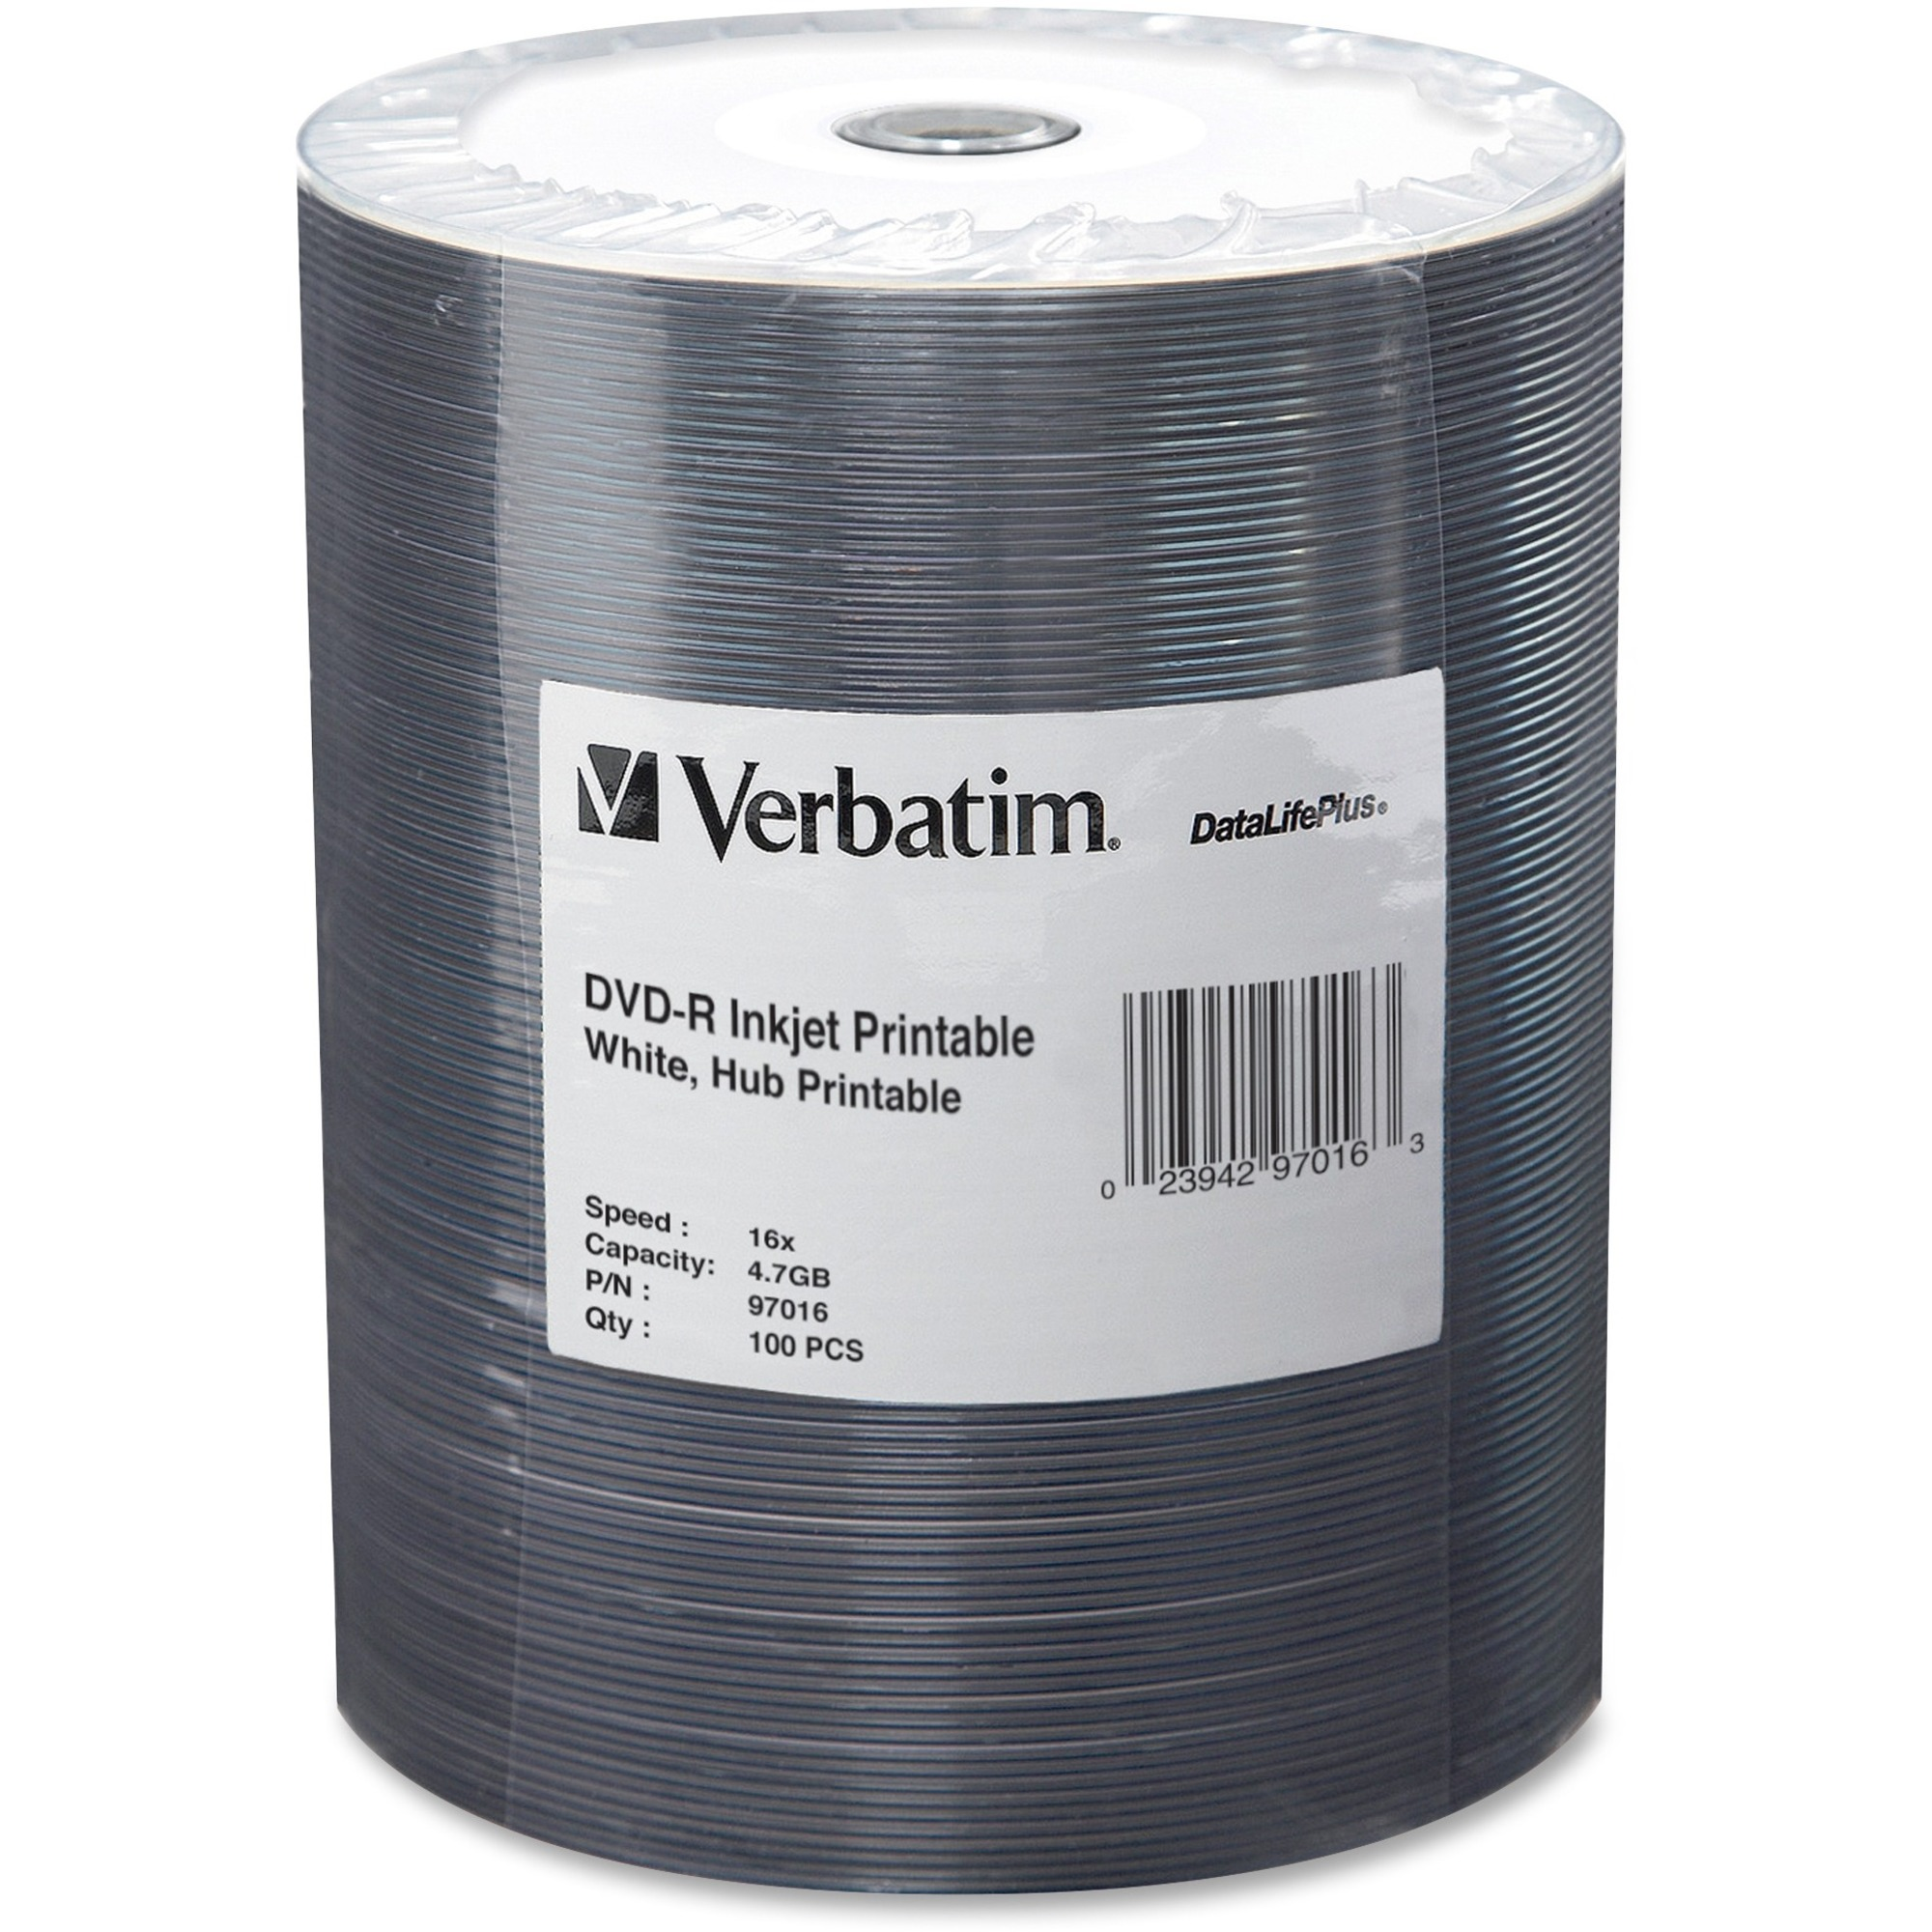 Verbatim dvd rw 4 7gb 4x with branded surface 30pk spindle 4 7gb - Zoom In